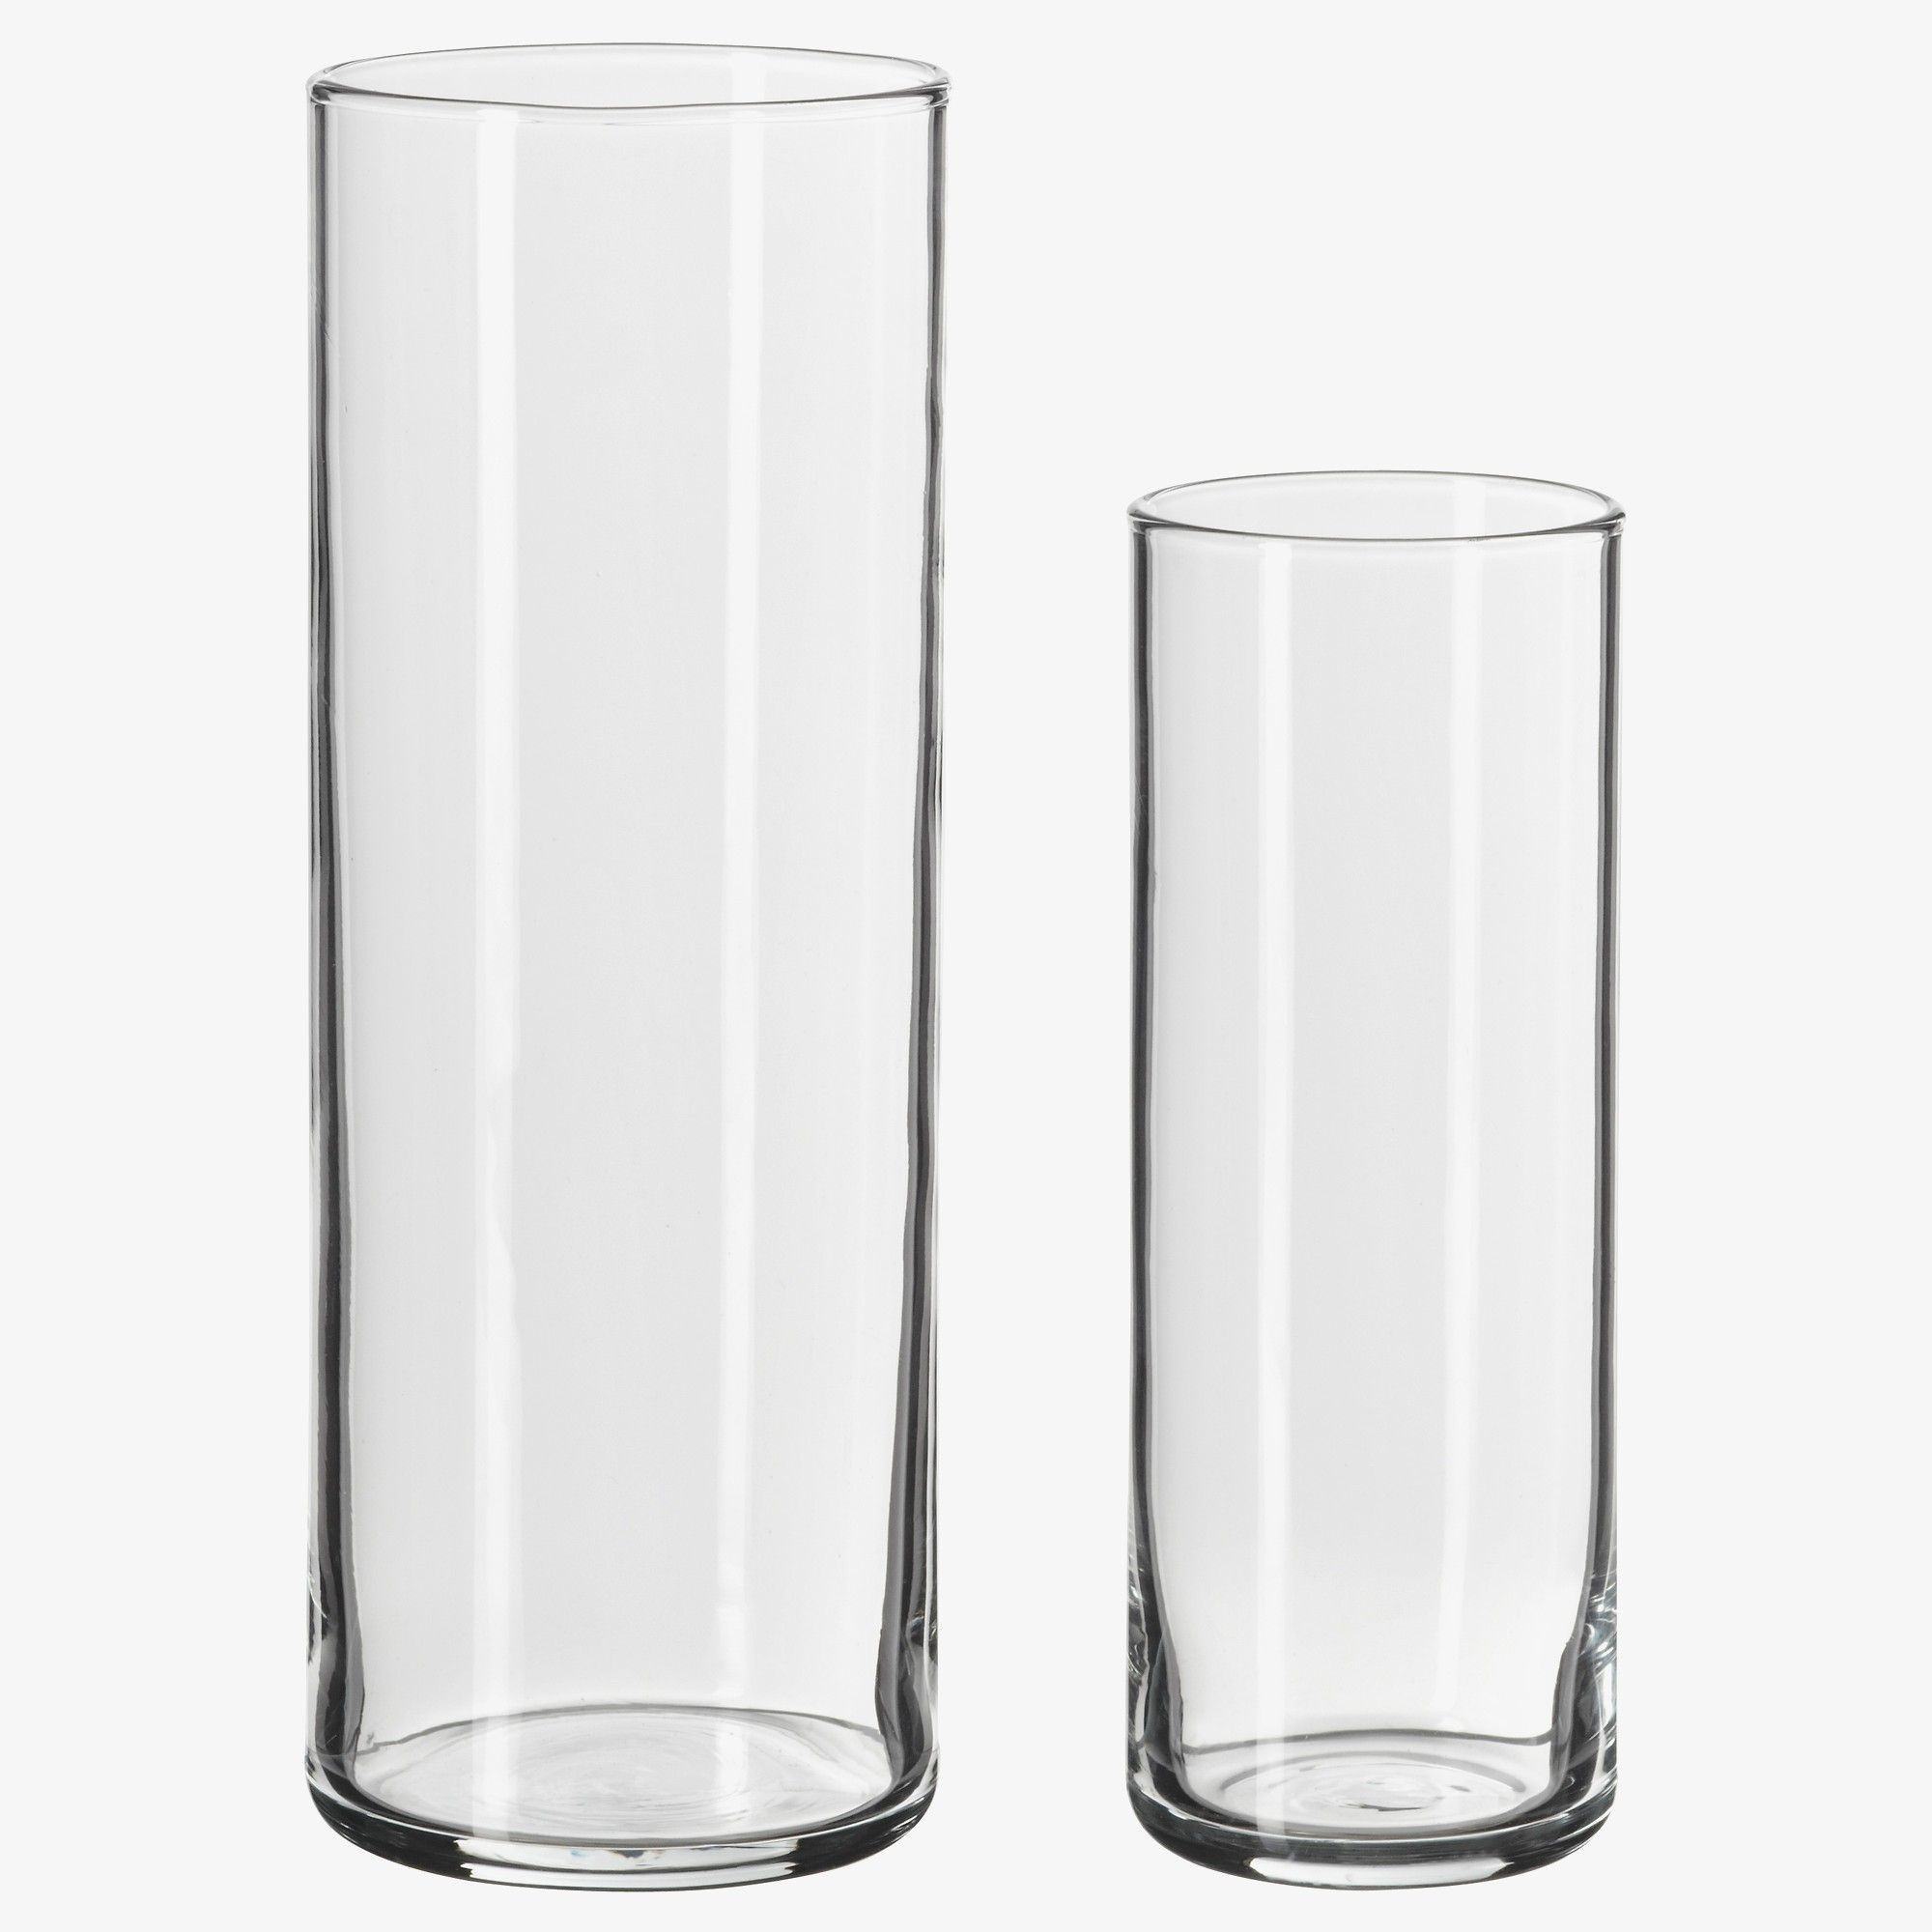 12 Nice 16 Glass Cylinder Vases wholesale 2021 free download 16 glass cylinder vases wholesale of 40 glass vases bulk the weekly world for clear glass tv stand charming new design ikea mantel great pe s5h